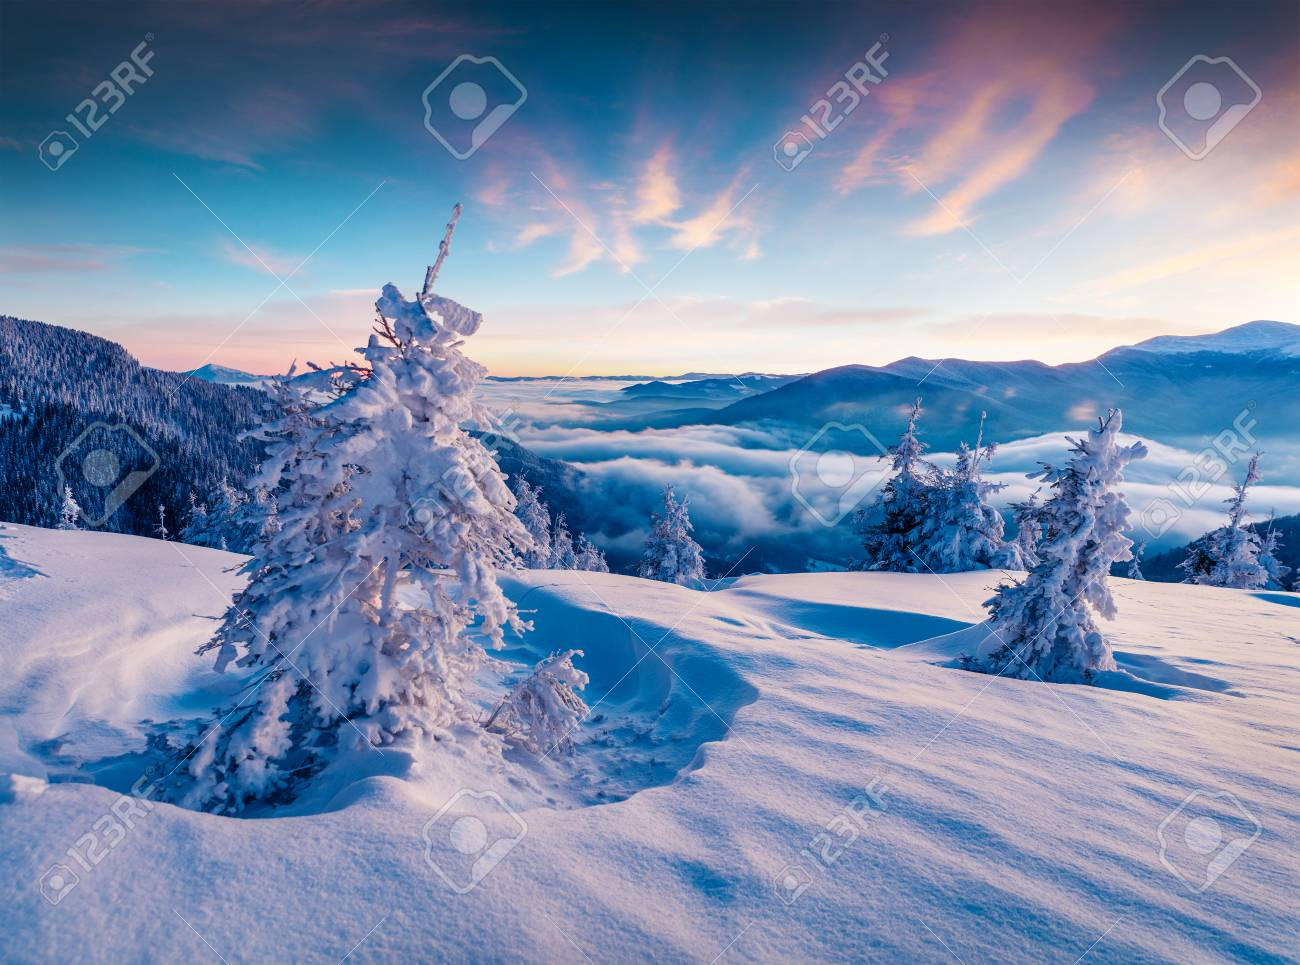 Dramatic winter sunrise in Carpathian mountains with snow covered fir trees. Colorful outdoor scene, Happy New Year celebration concept. Artistic style post processed photo. - 89420026